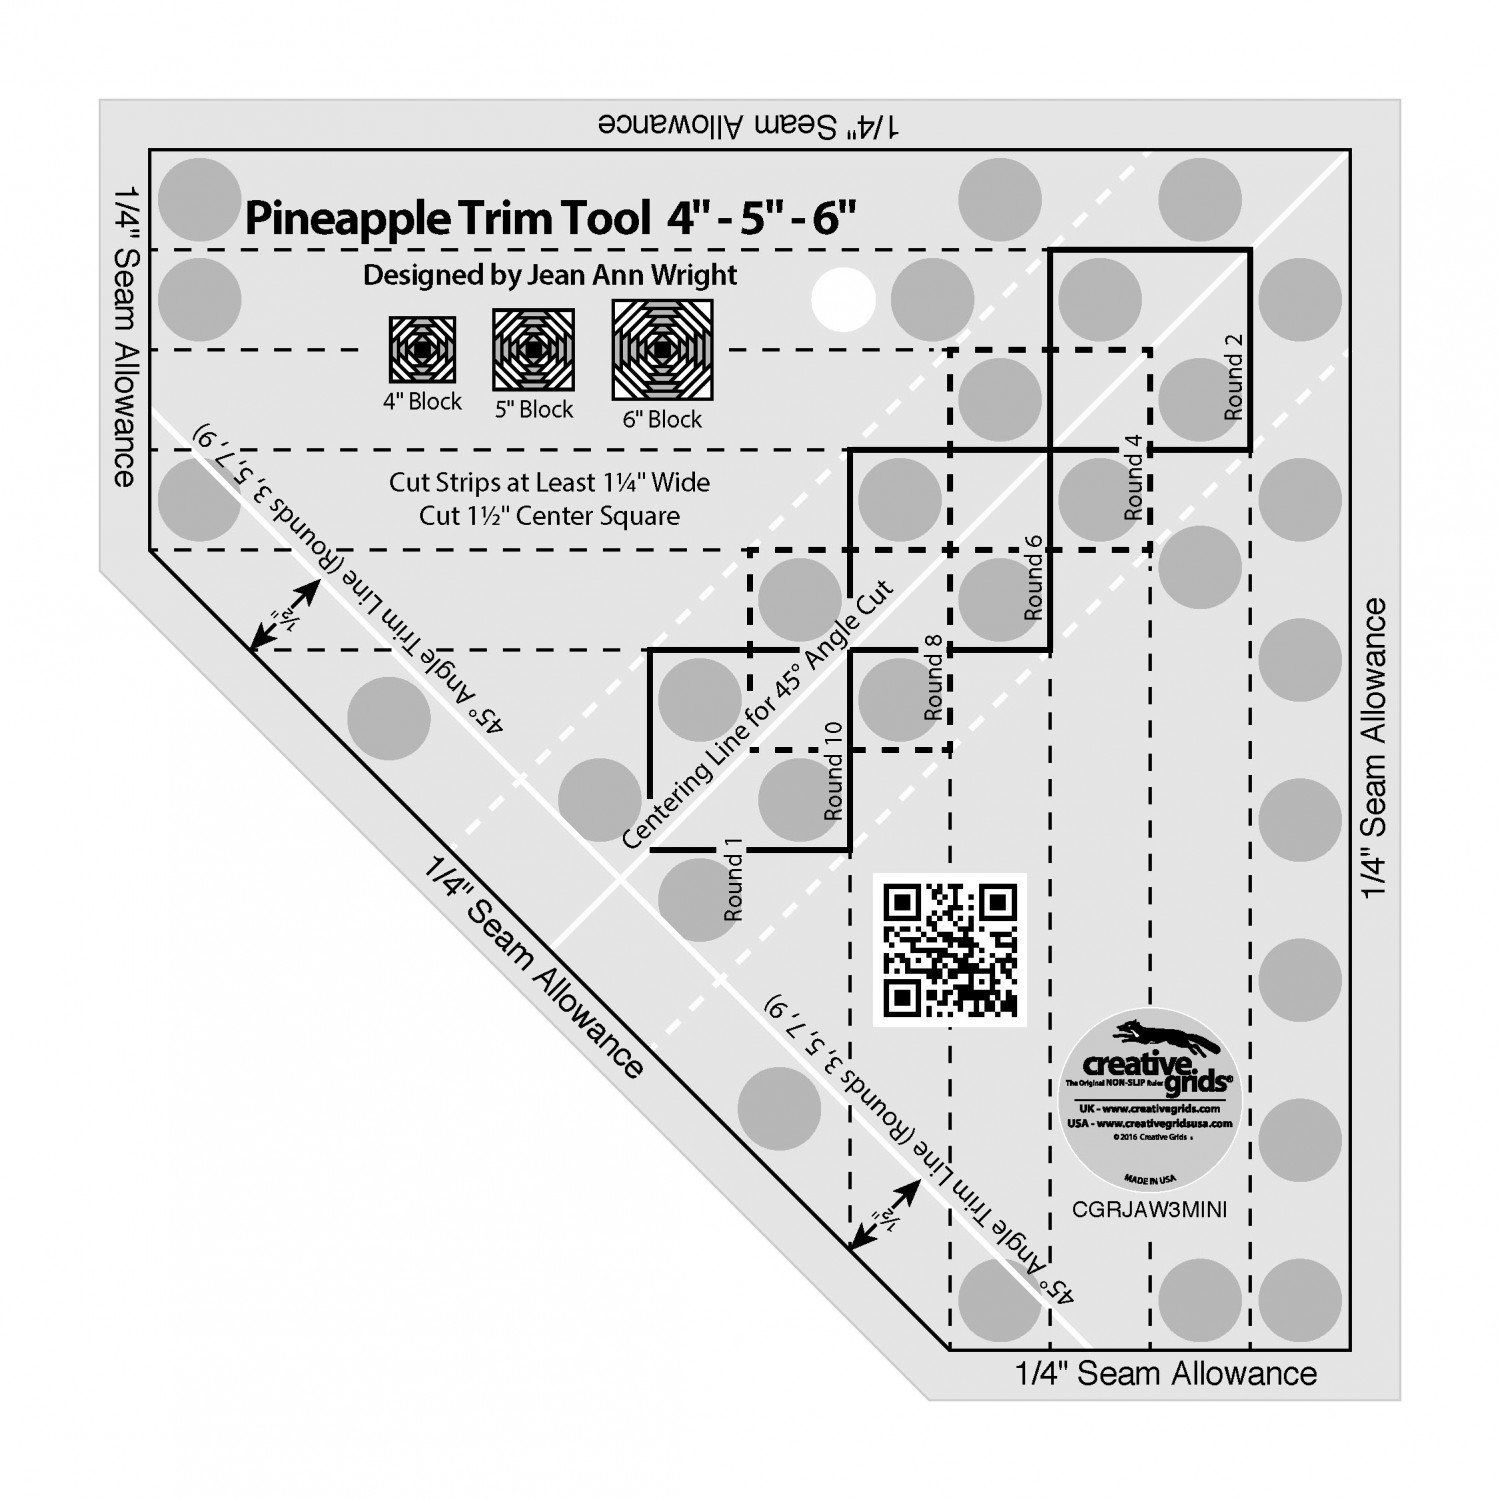 Creative Grids Mini Pineapple Trim Tool Quilting Ruler Template ...